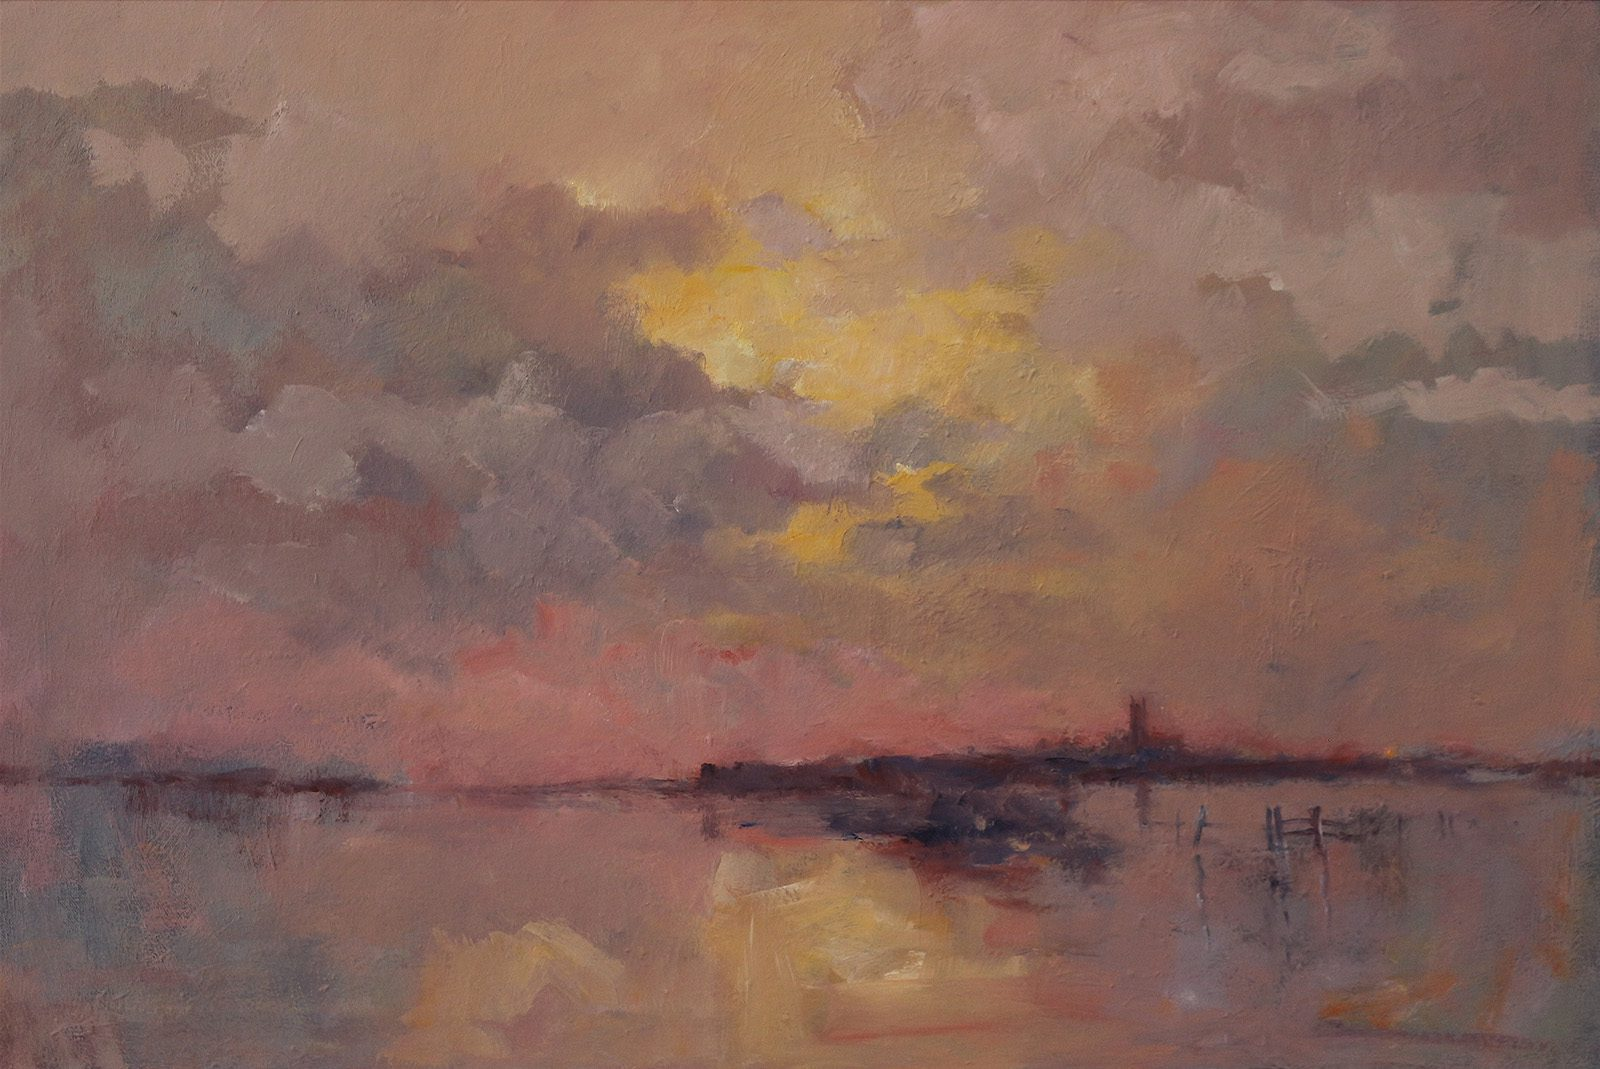 Moody landscape oil painting with the River Derwent with burst banks by Stewart Taylor